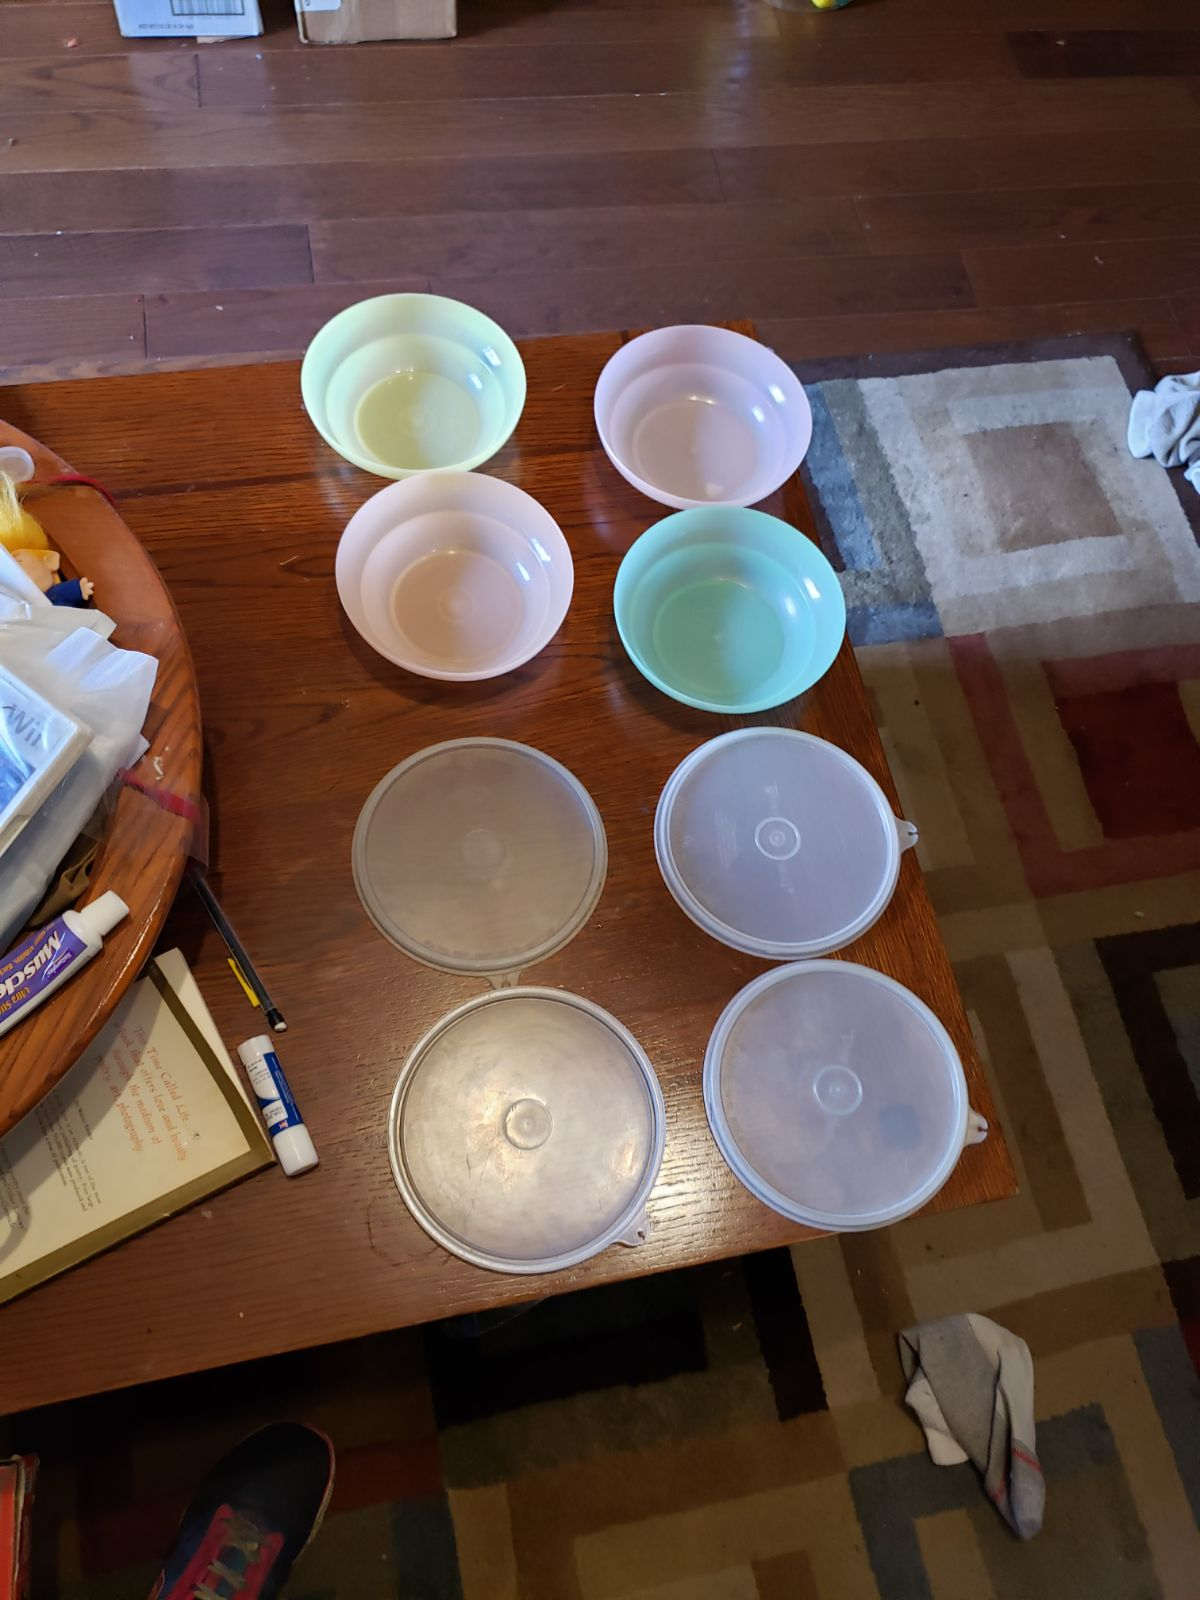 Tupperware bowls with lids, vintage